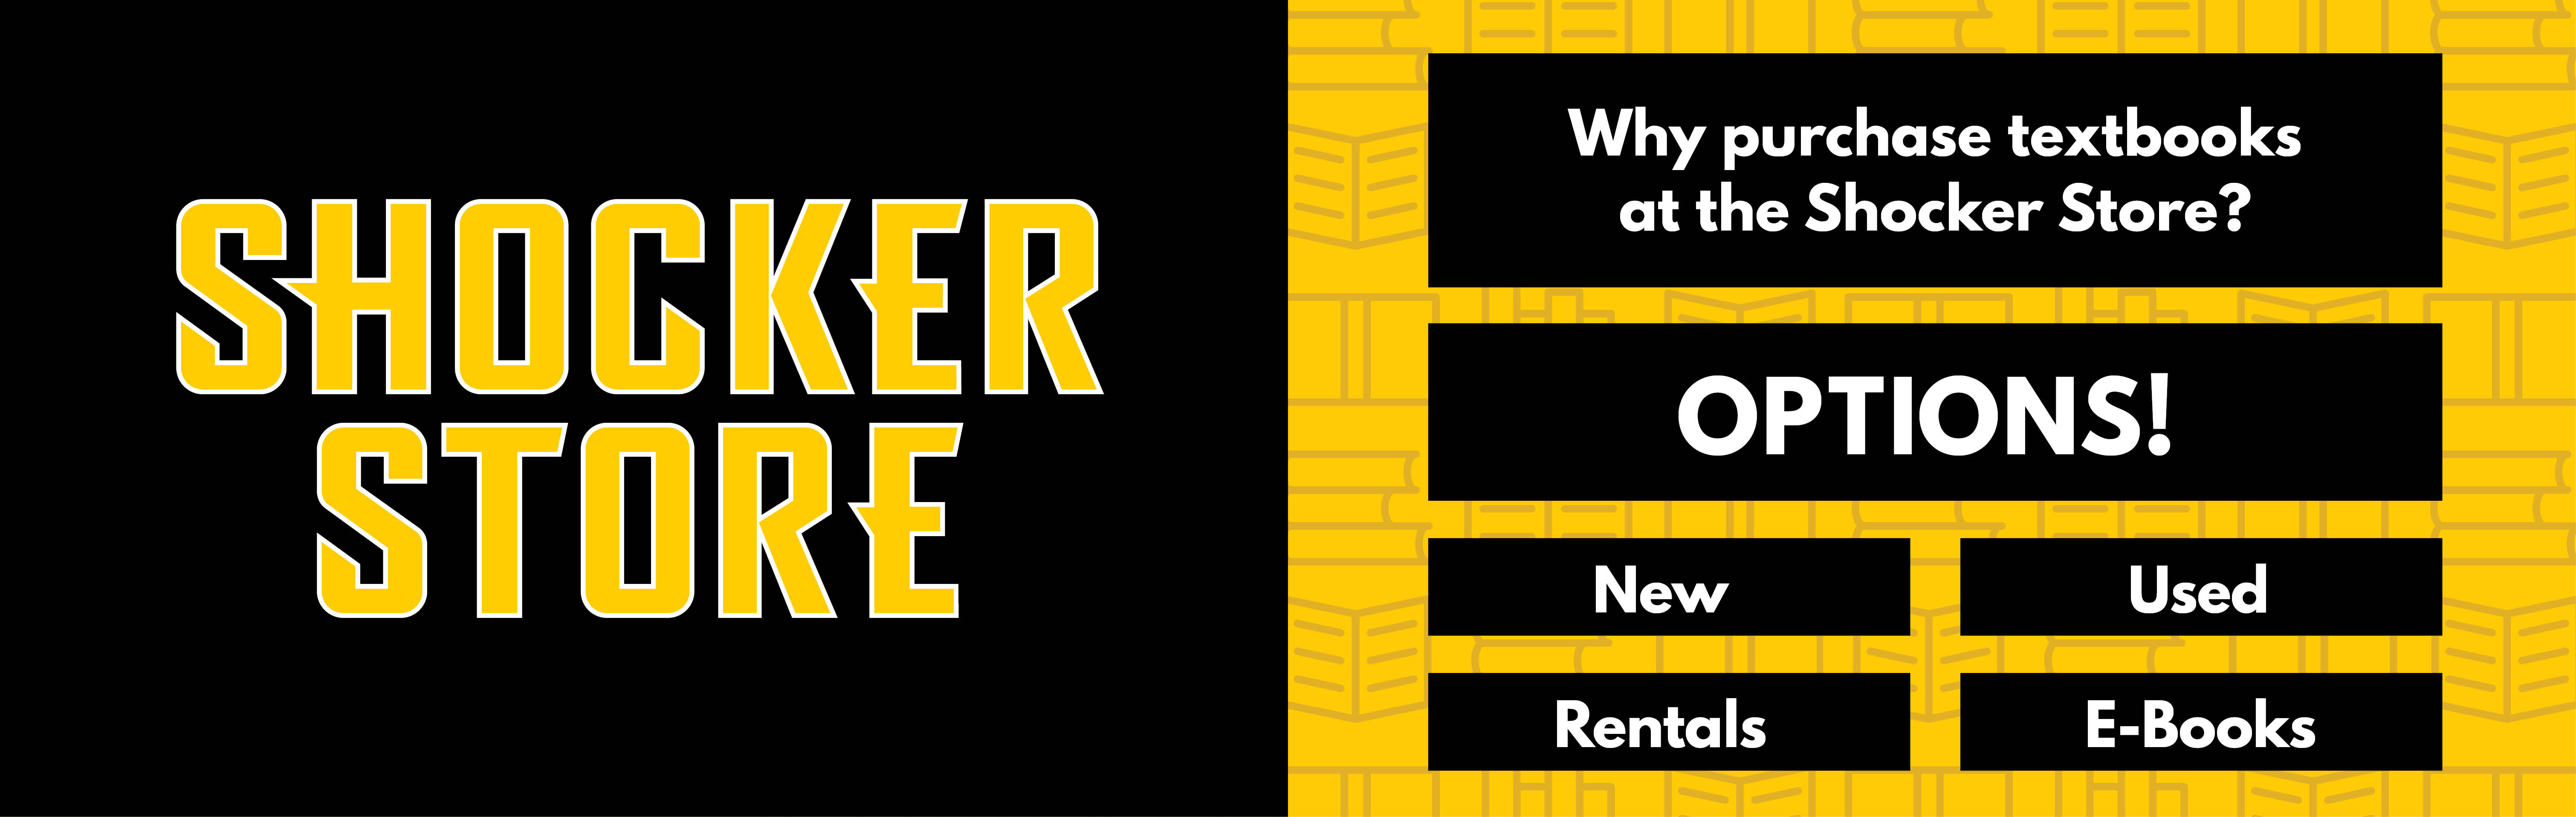 Why purchase textbooks at the Shocker Store? Options! New, Used, Rentals, E-books.